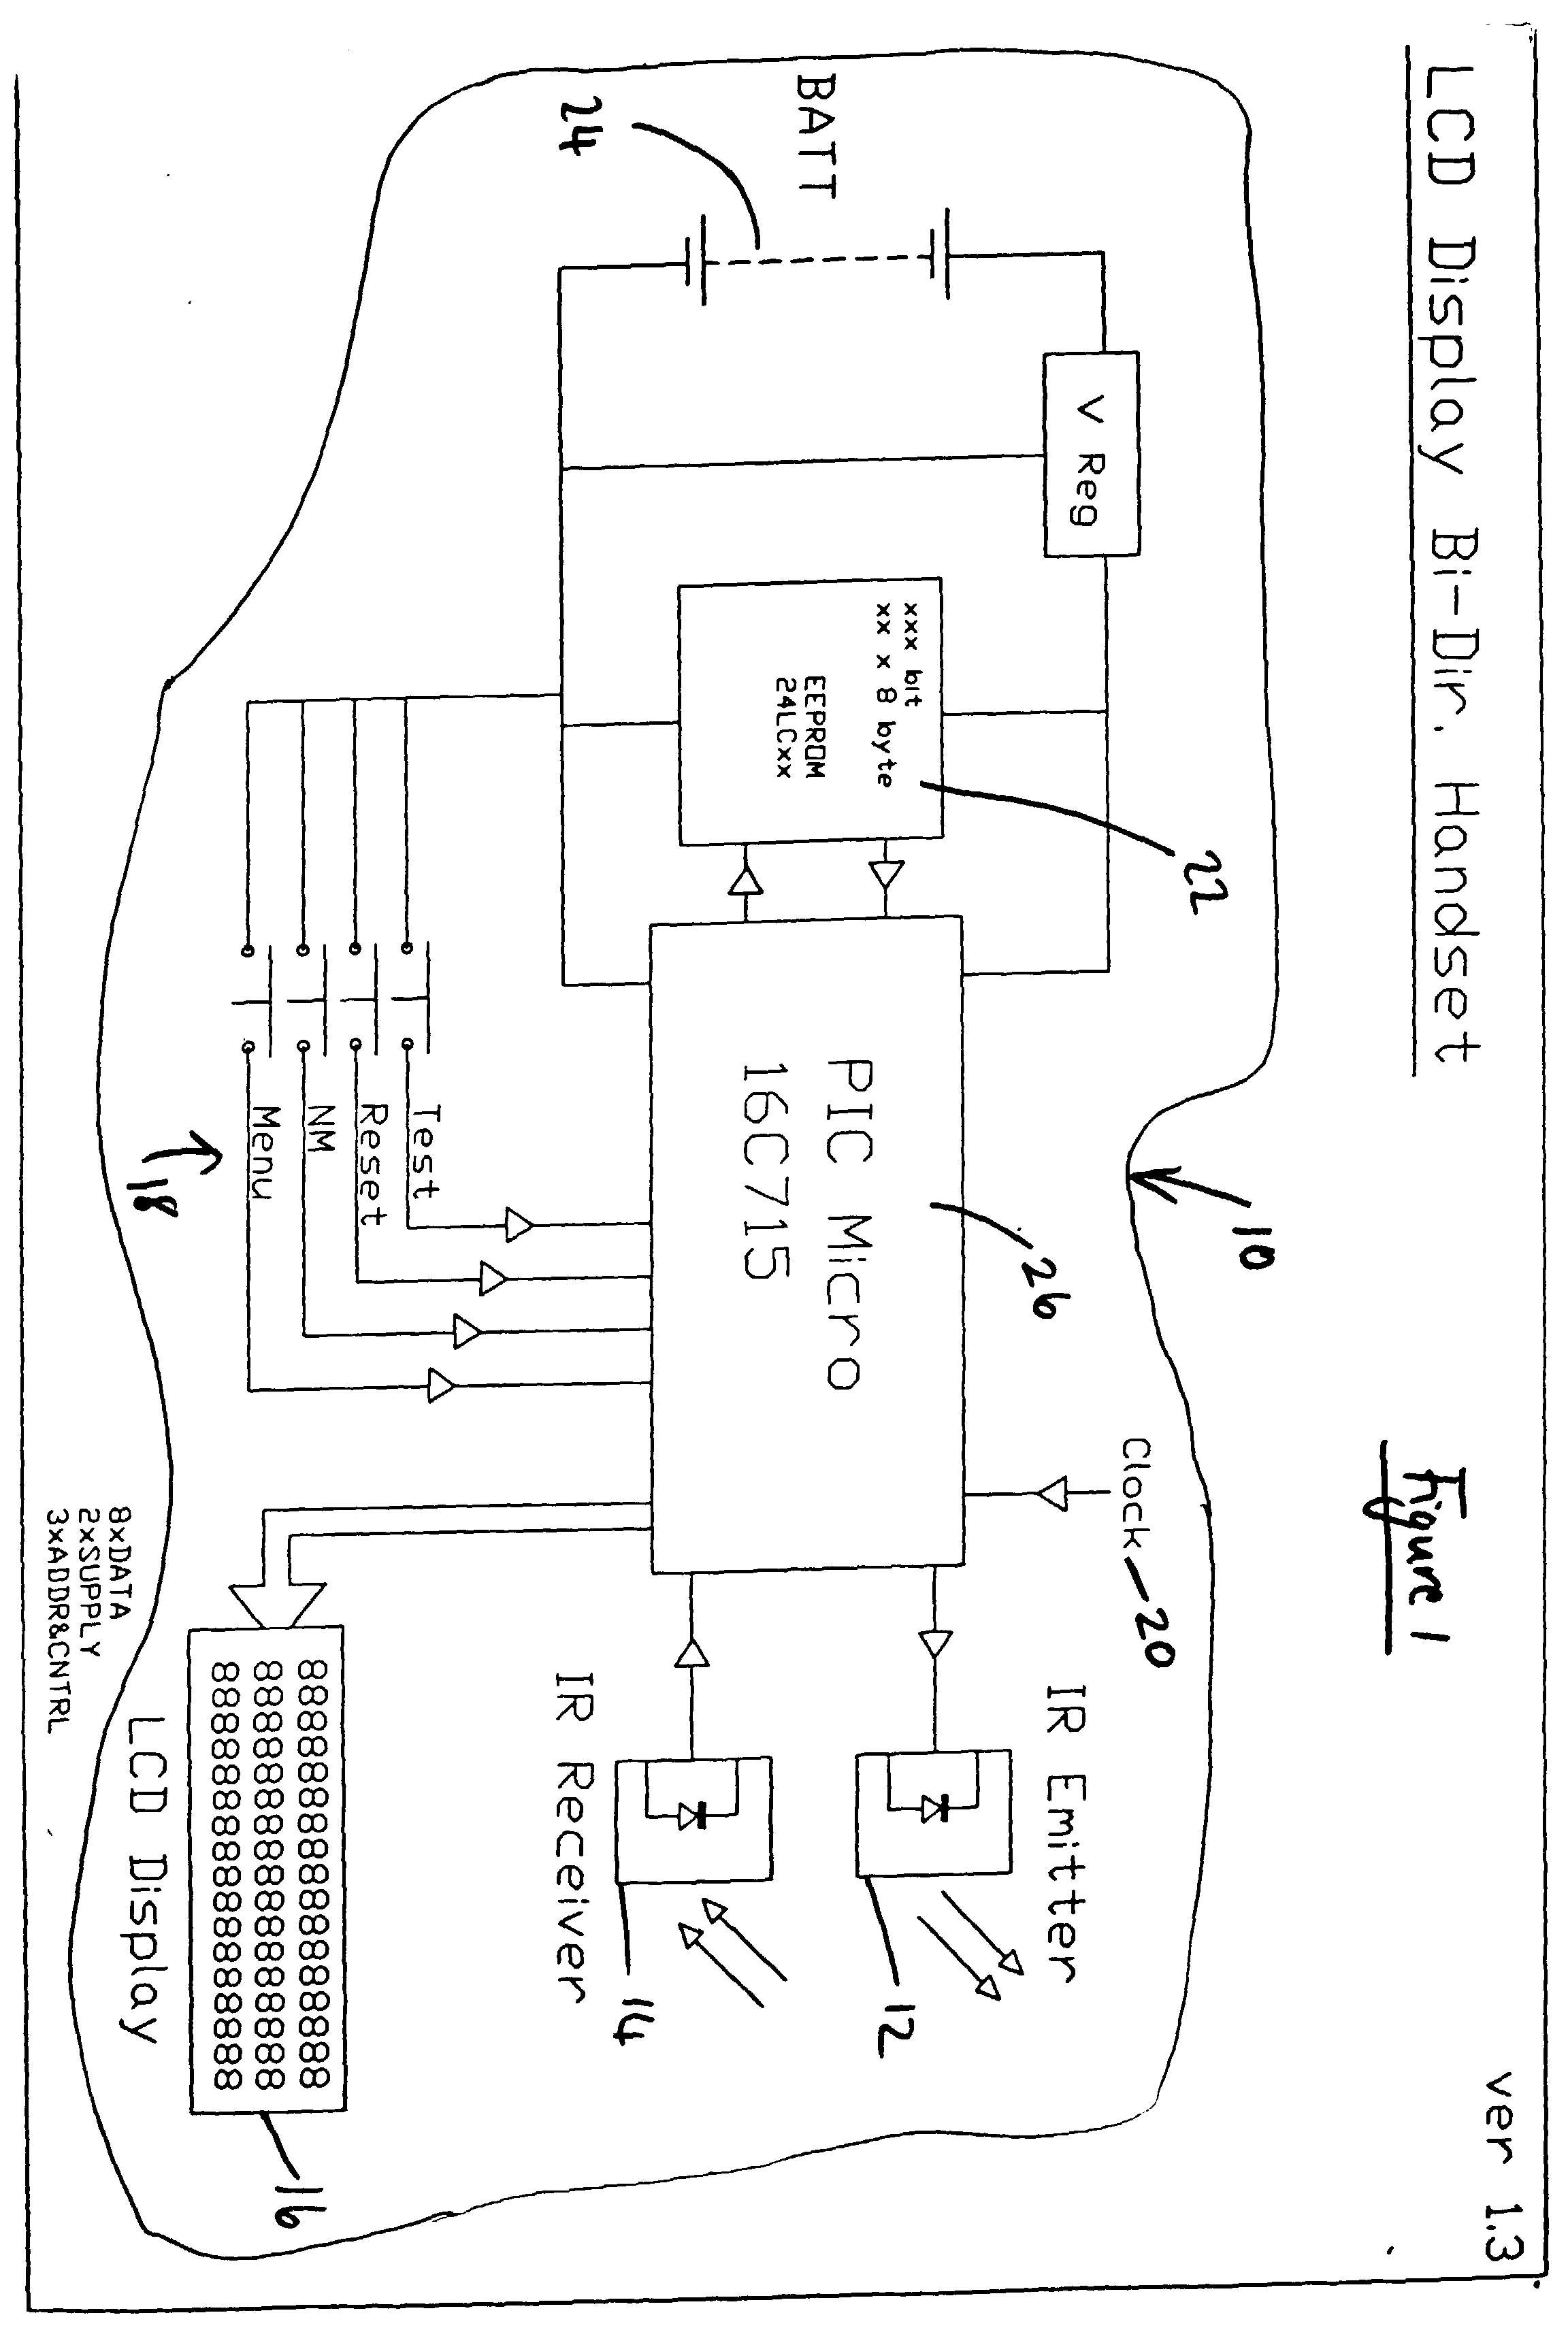 EP1035628A1 on emergency light wiring diagram